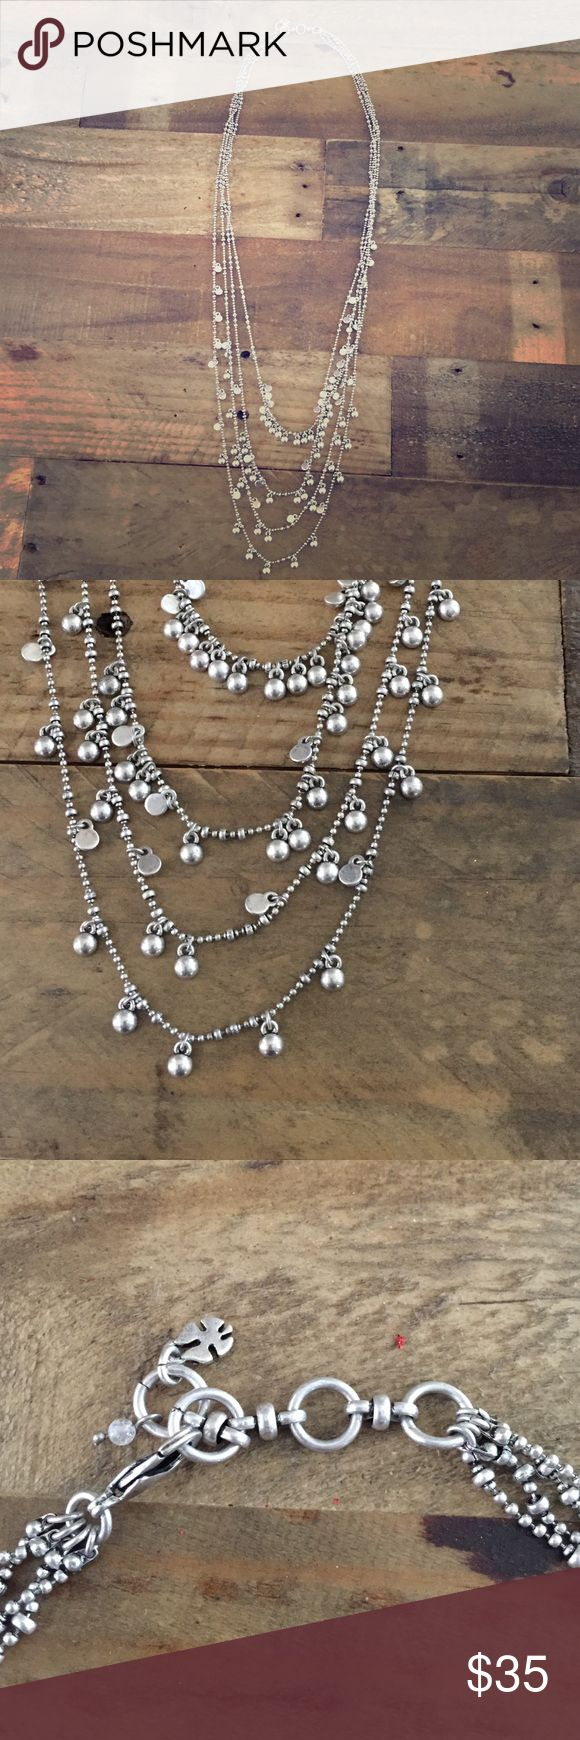 Lucky Brand Silvertone Boho Statement Necklace New without tags Lucky Brand Jewelry Necklaces